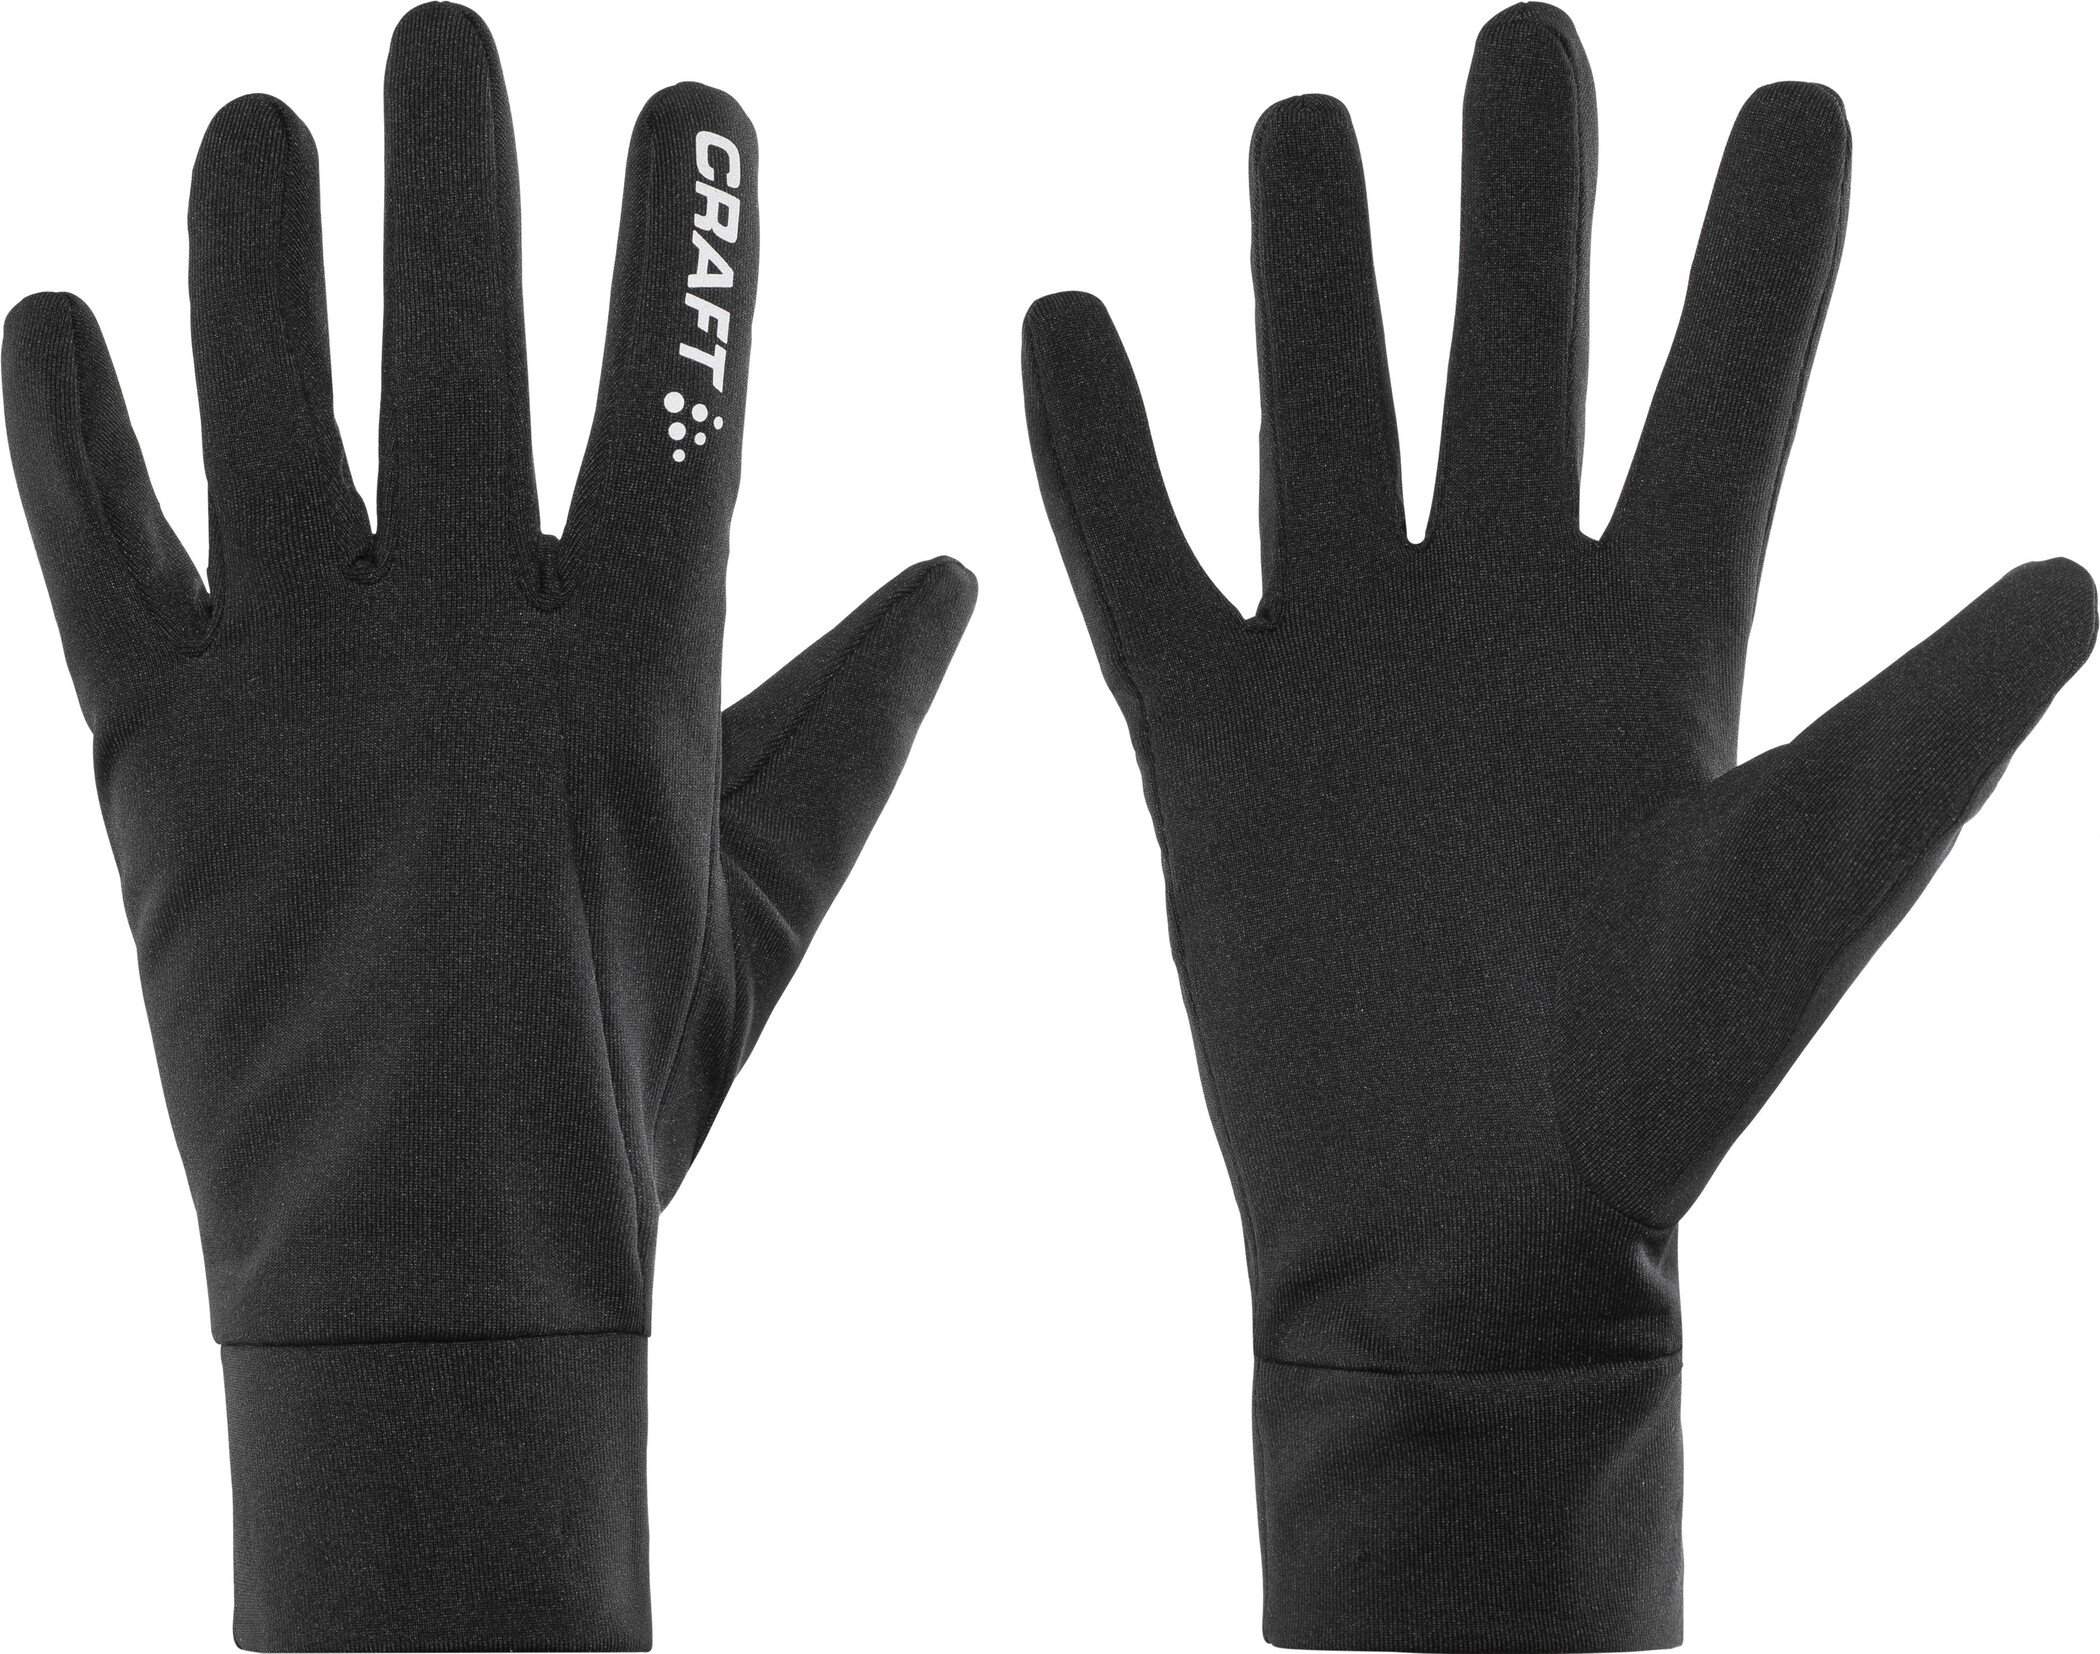 Craft Thermal Gloves, black | Handsker